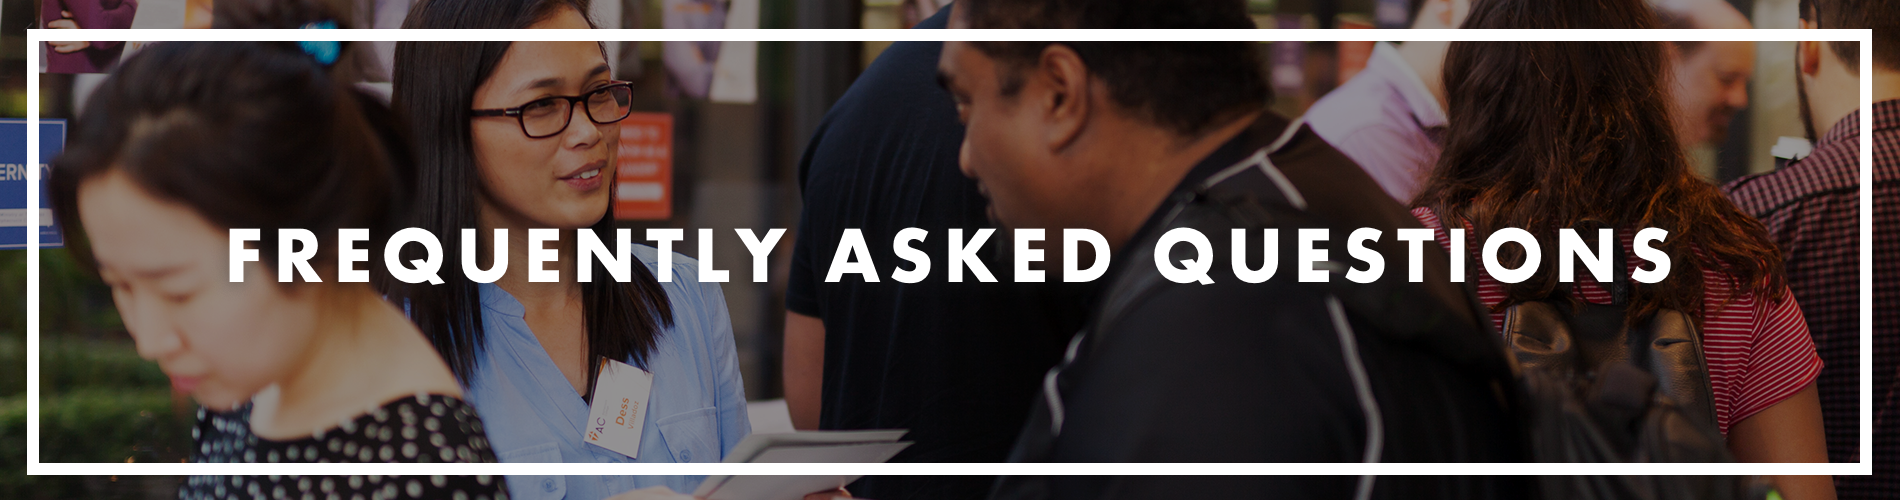 Frequently Asked Questions banner